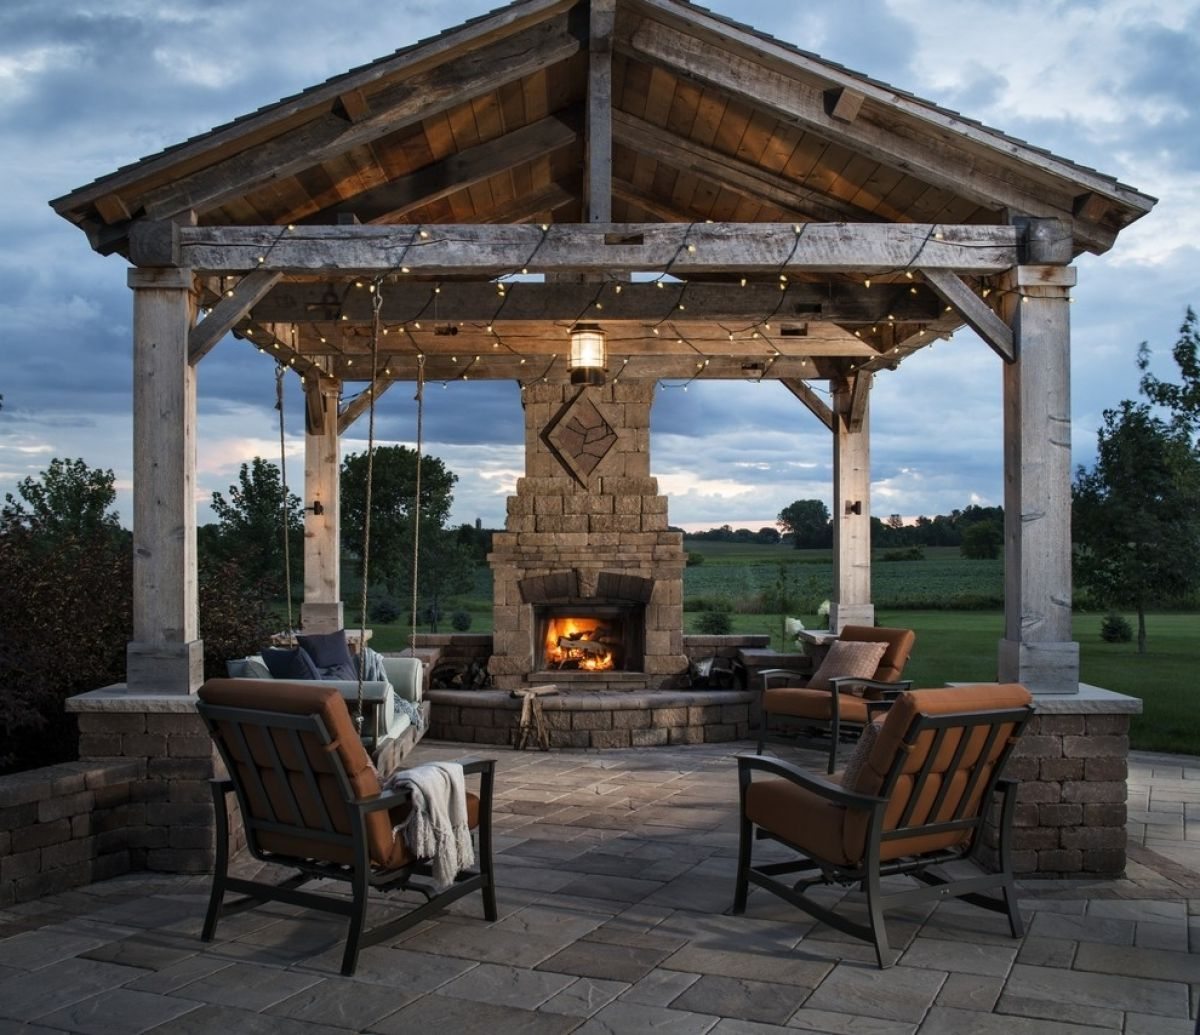 Covered Gazebos For Patios | Gazebo IDeas